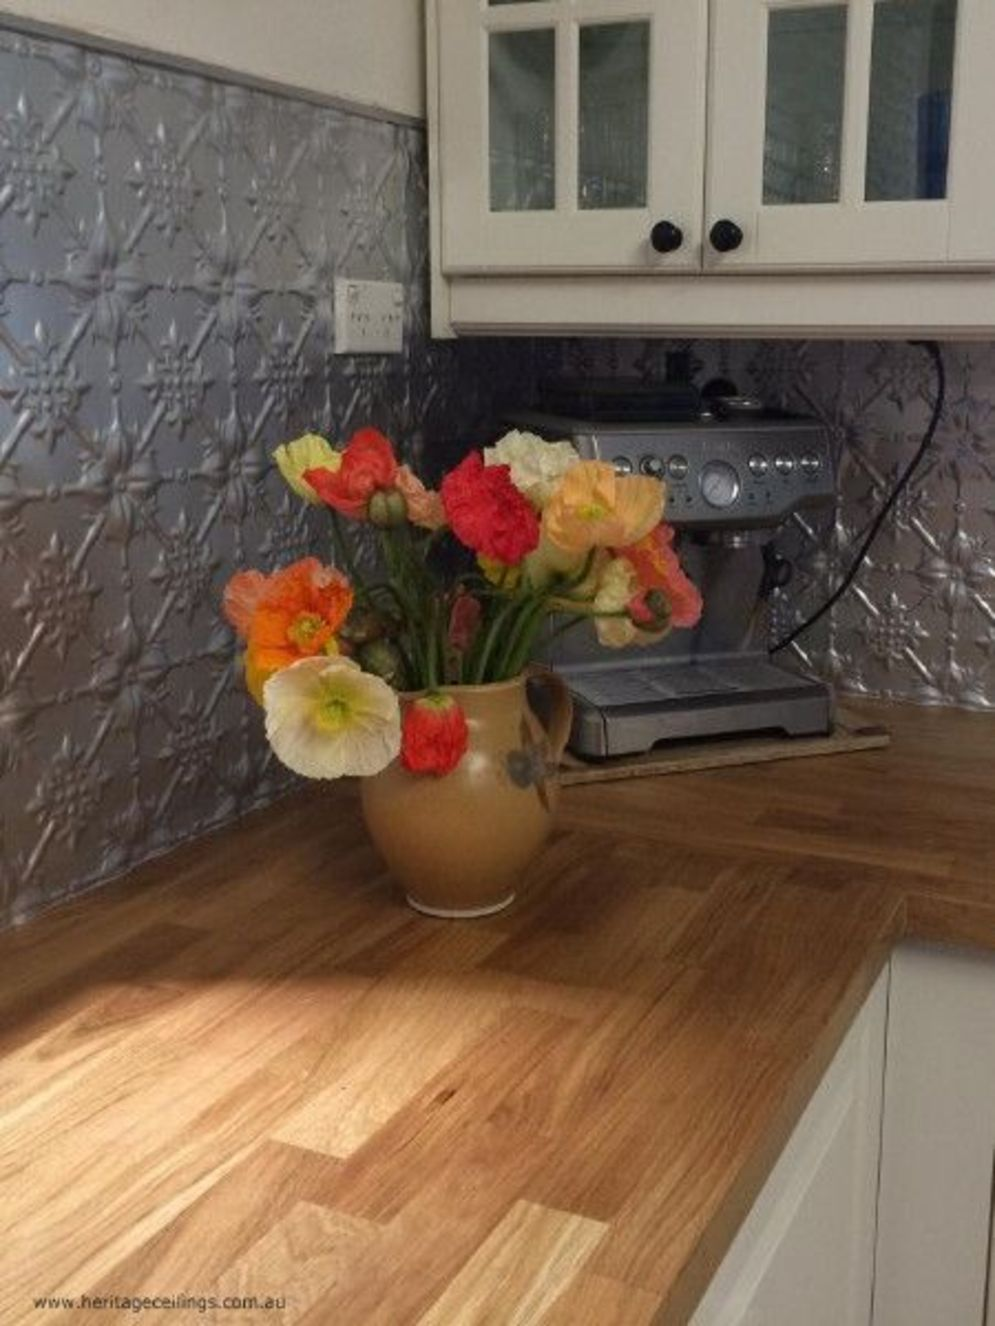 Beautiful kitchen backsplash designs giving special accents in the house Image 3